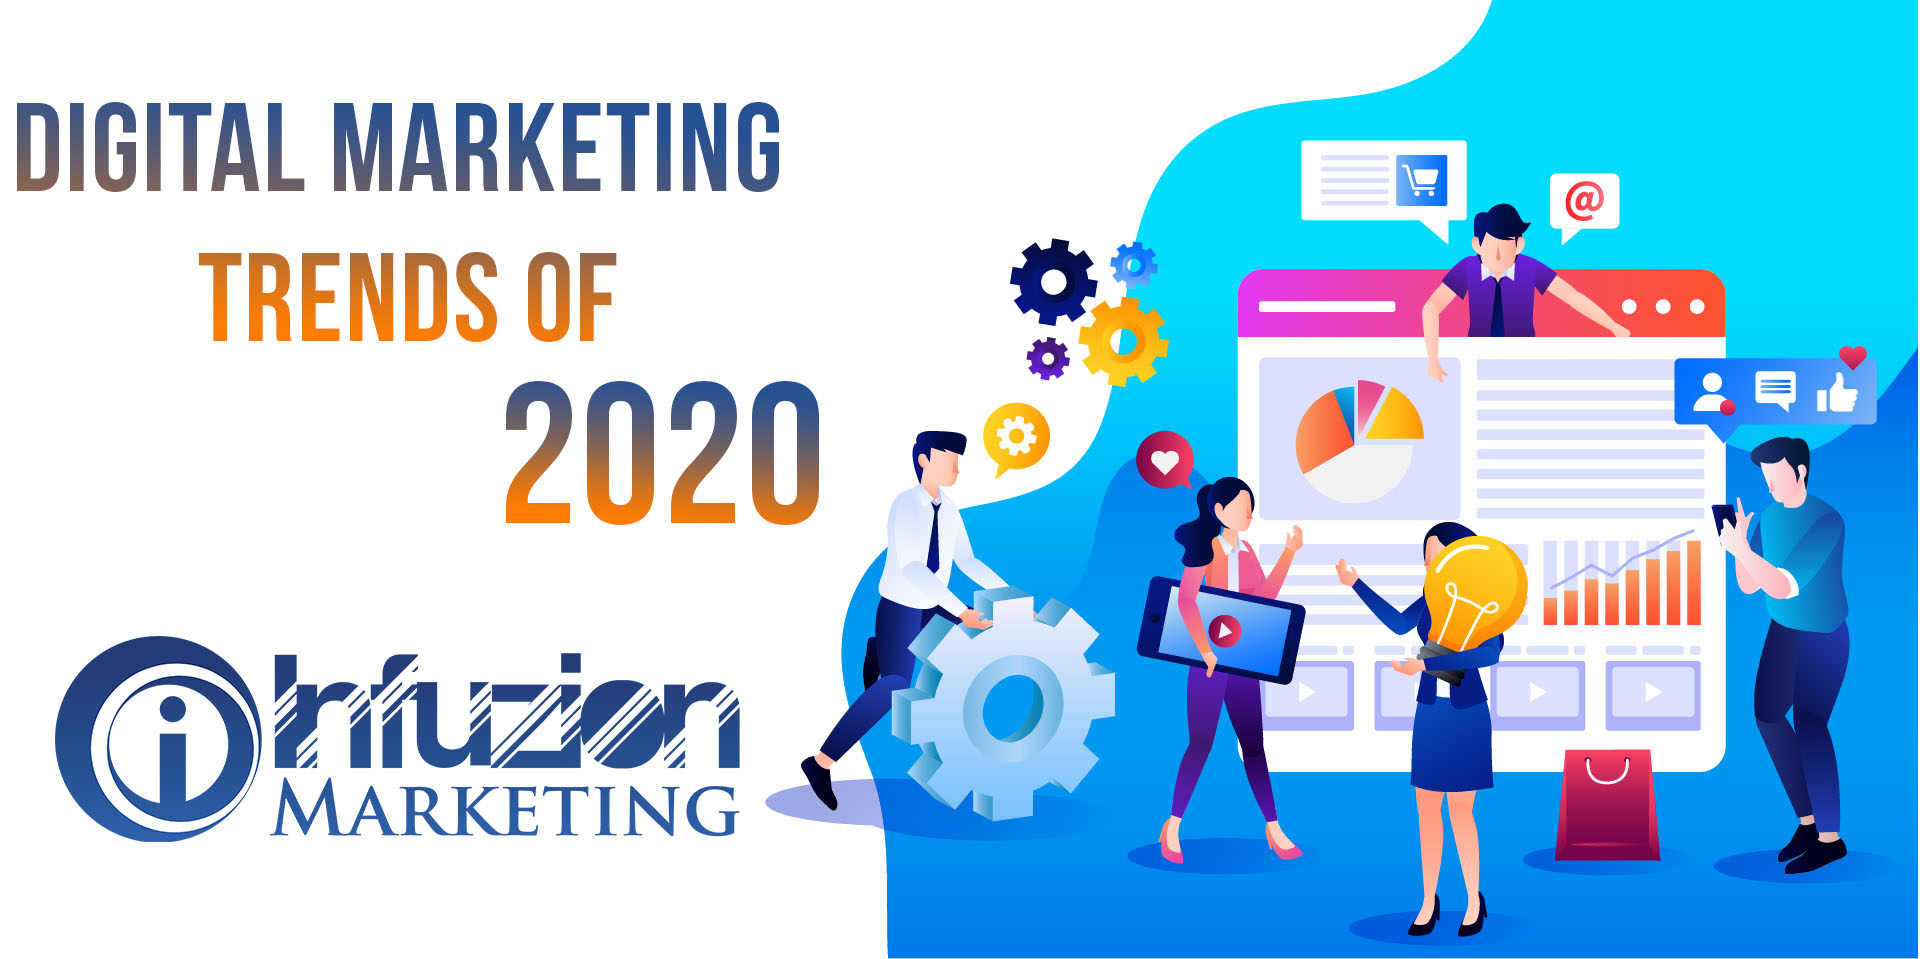 Digital Marketing Trends of 2020 - Infuzion Marketing